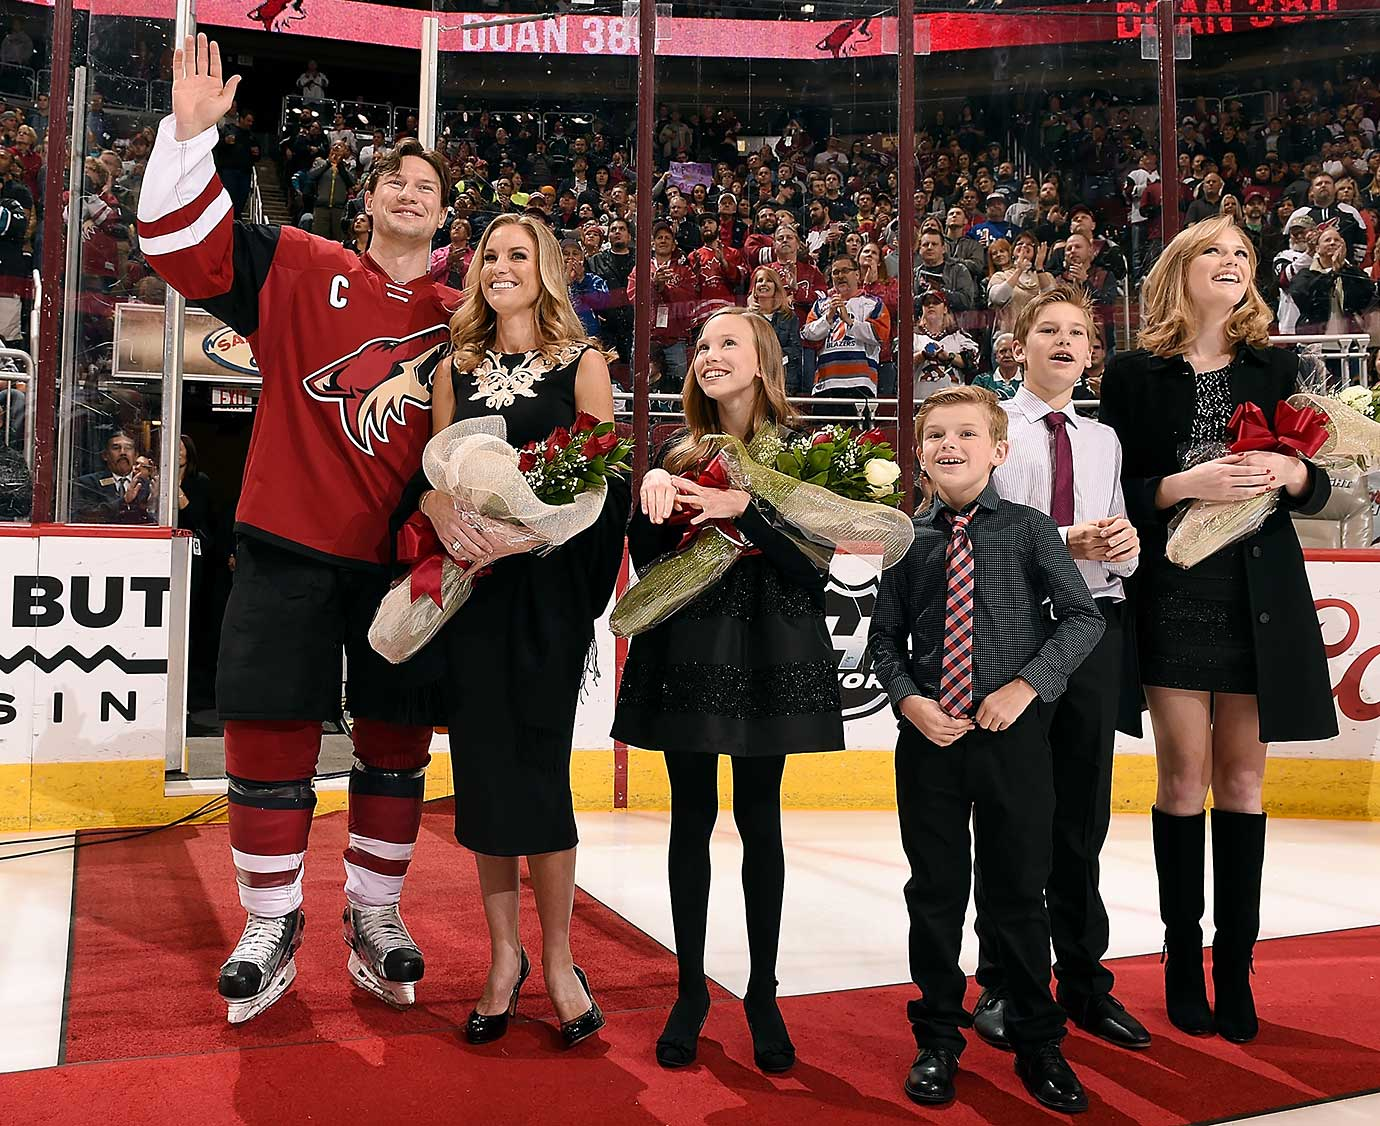 Shane Doan of the Arizona Coyotes waves to the crowd with his family during a ceremony in Glendale celebrating Doan being the all-time franchise goal scoring leader.